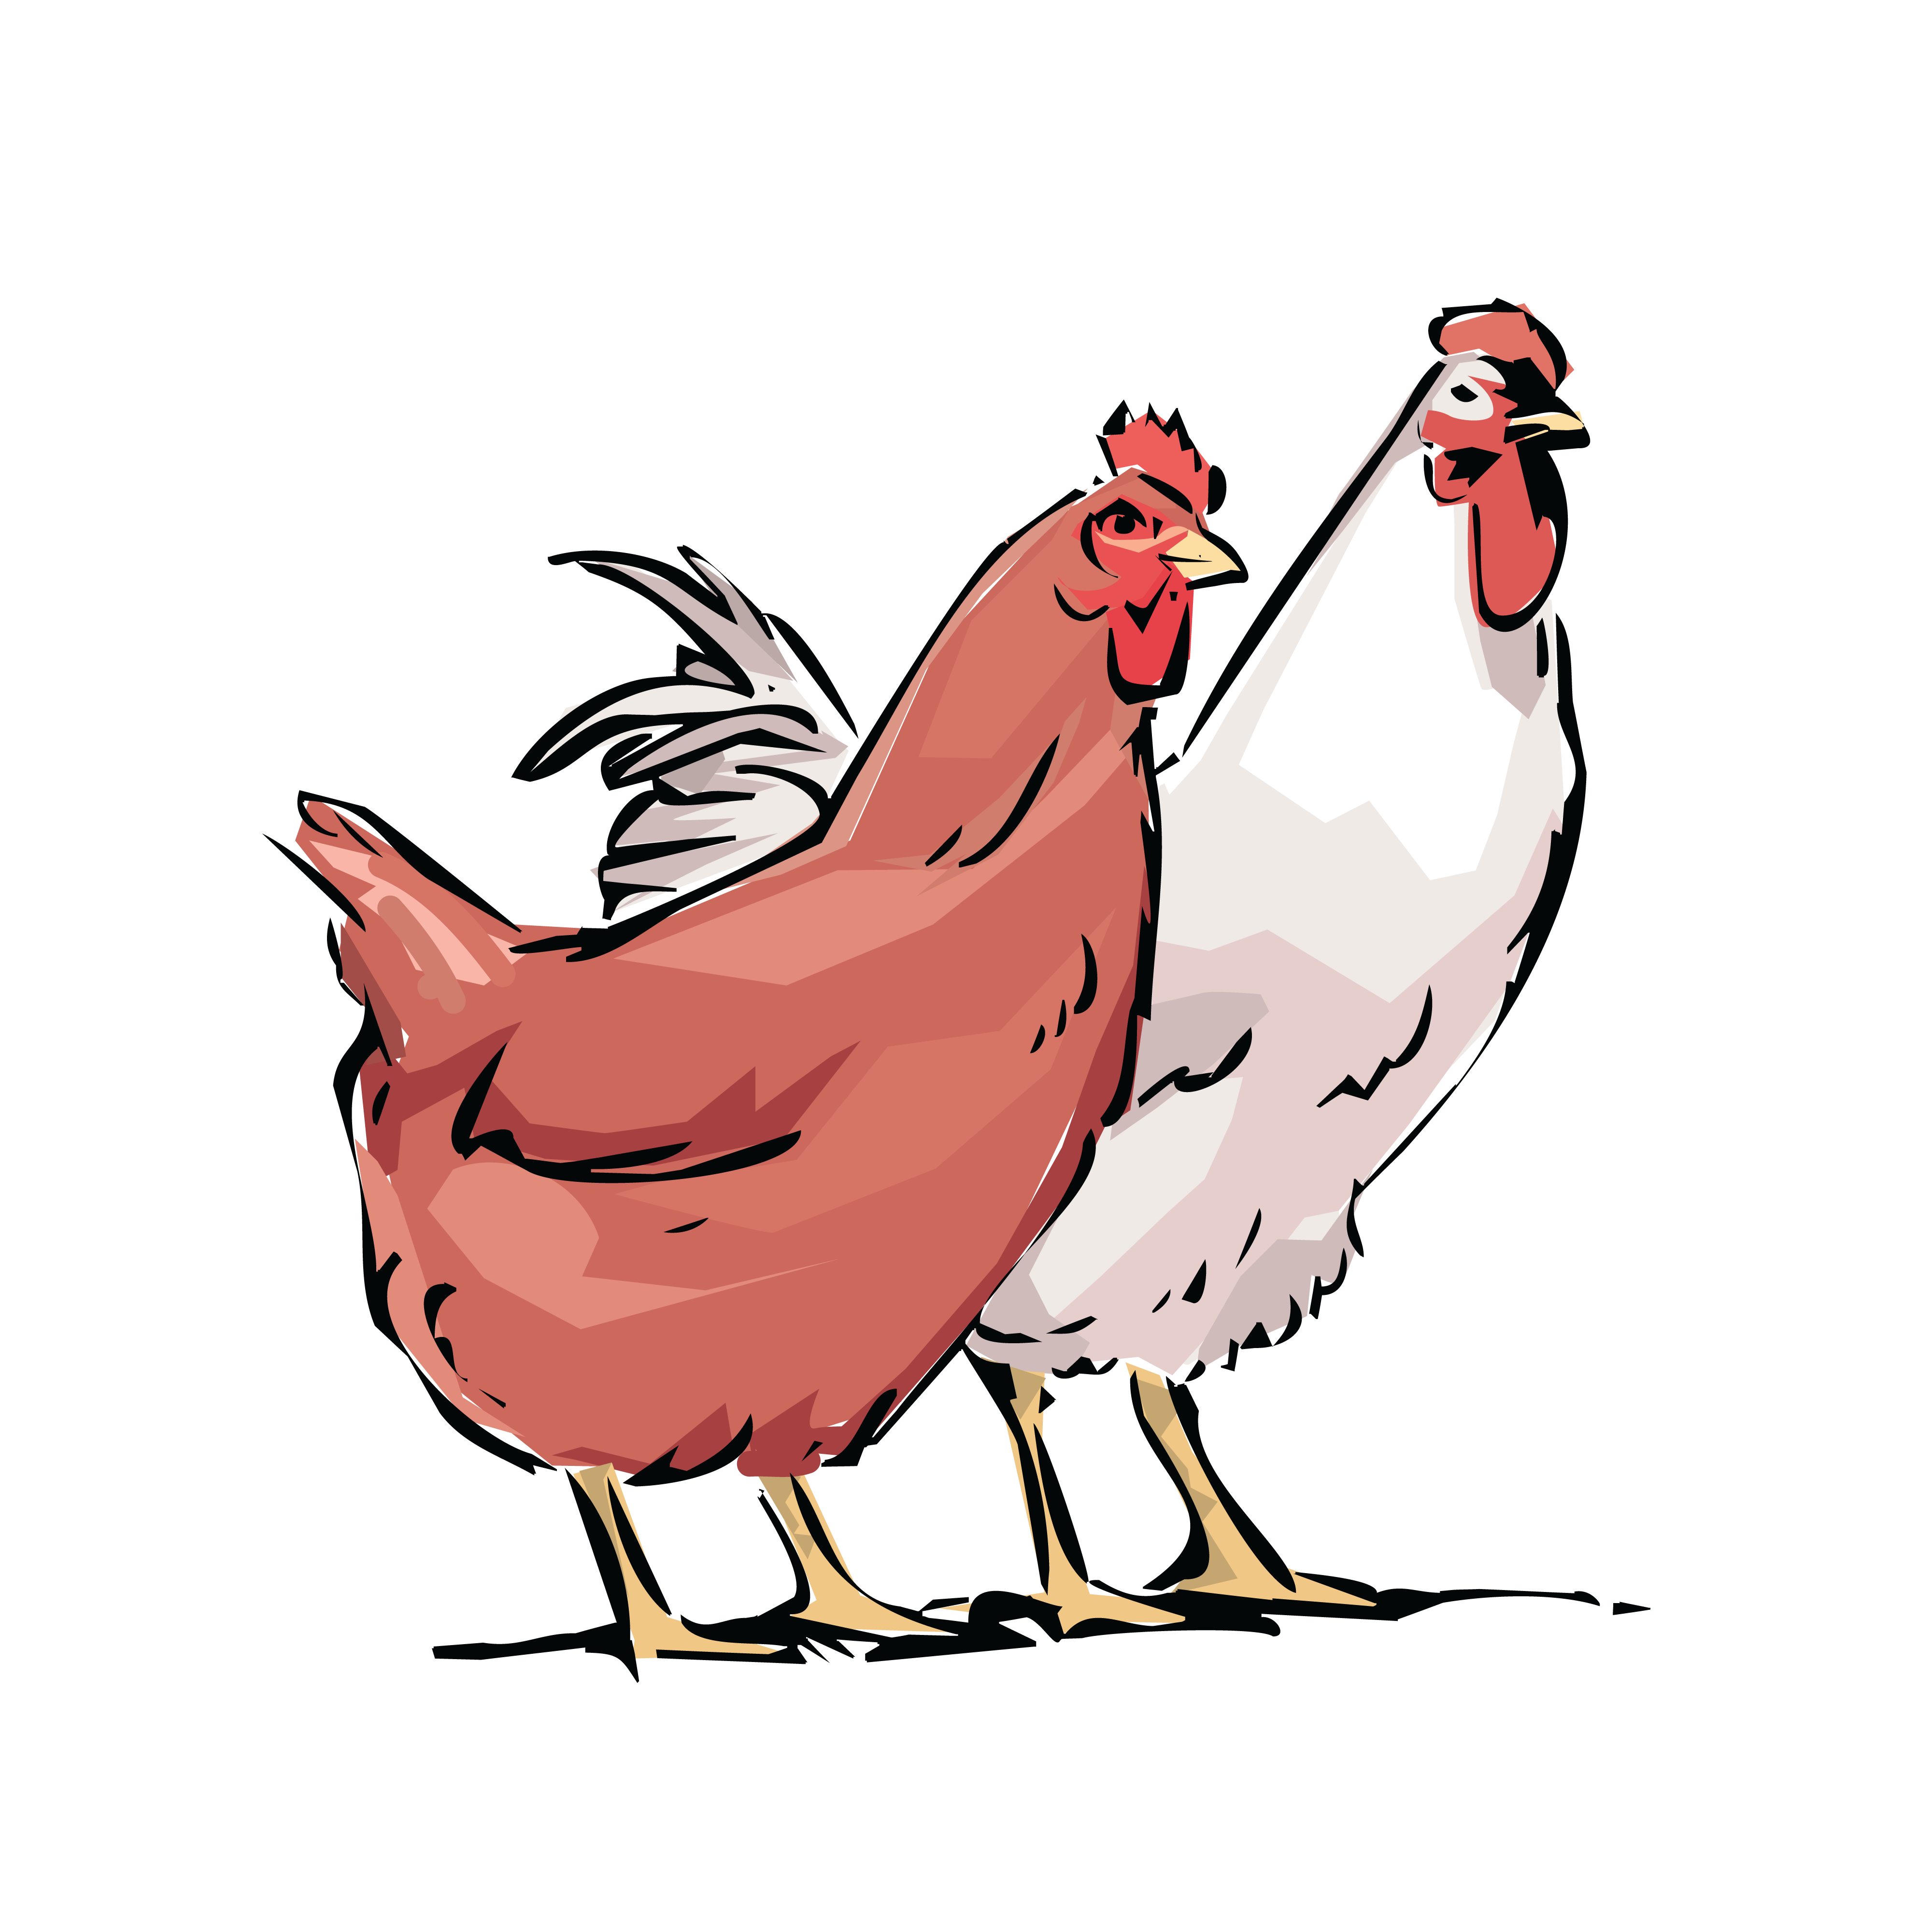 Hen clipart orange chicken. Rooster introducing free of